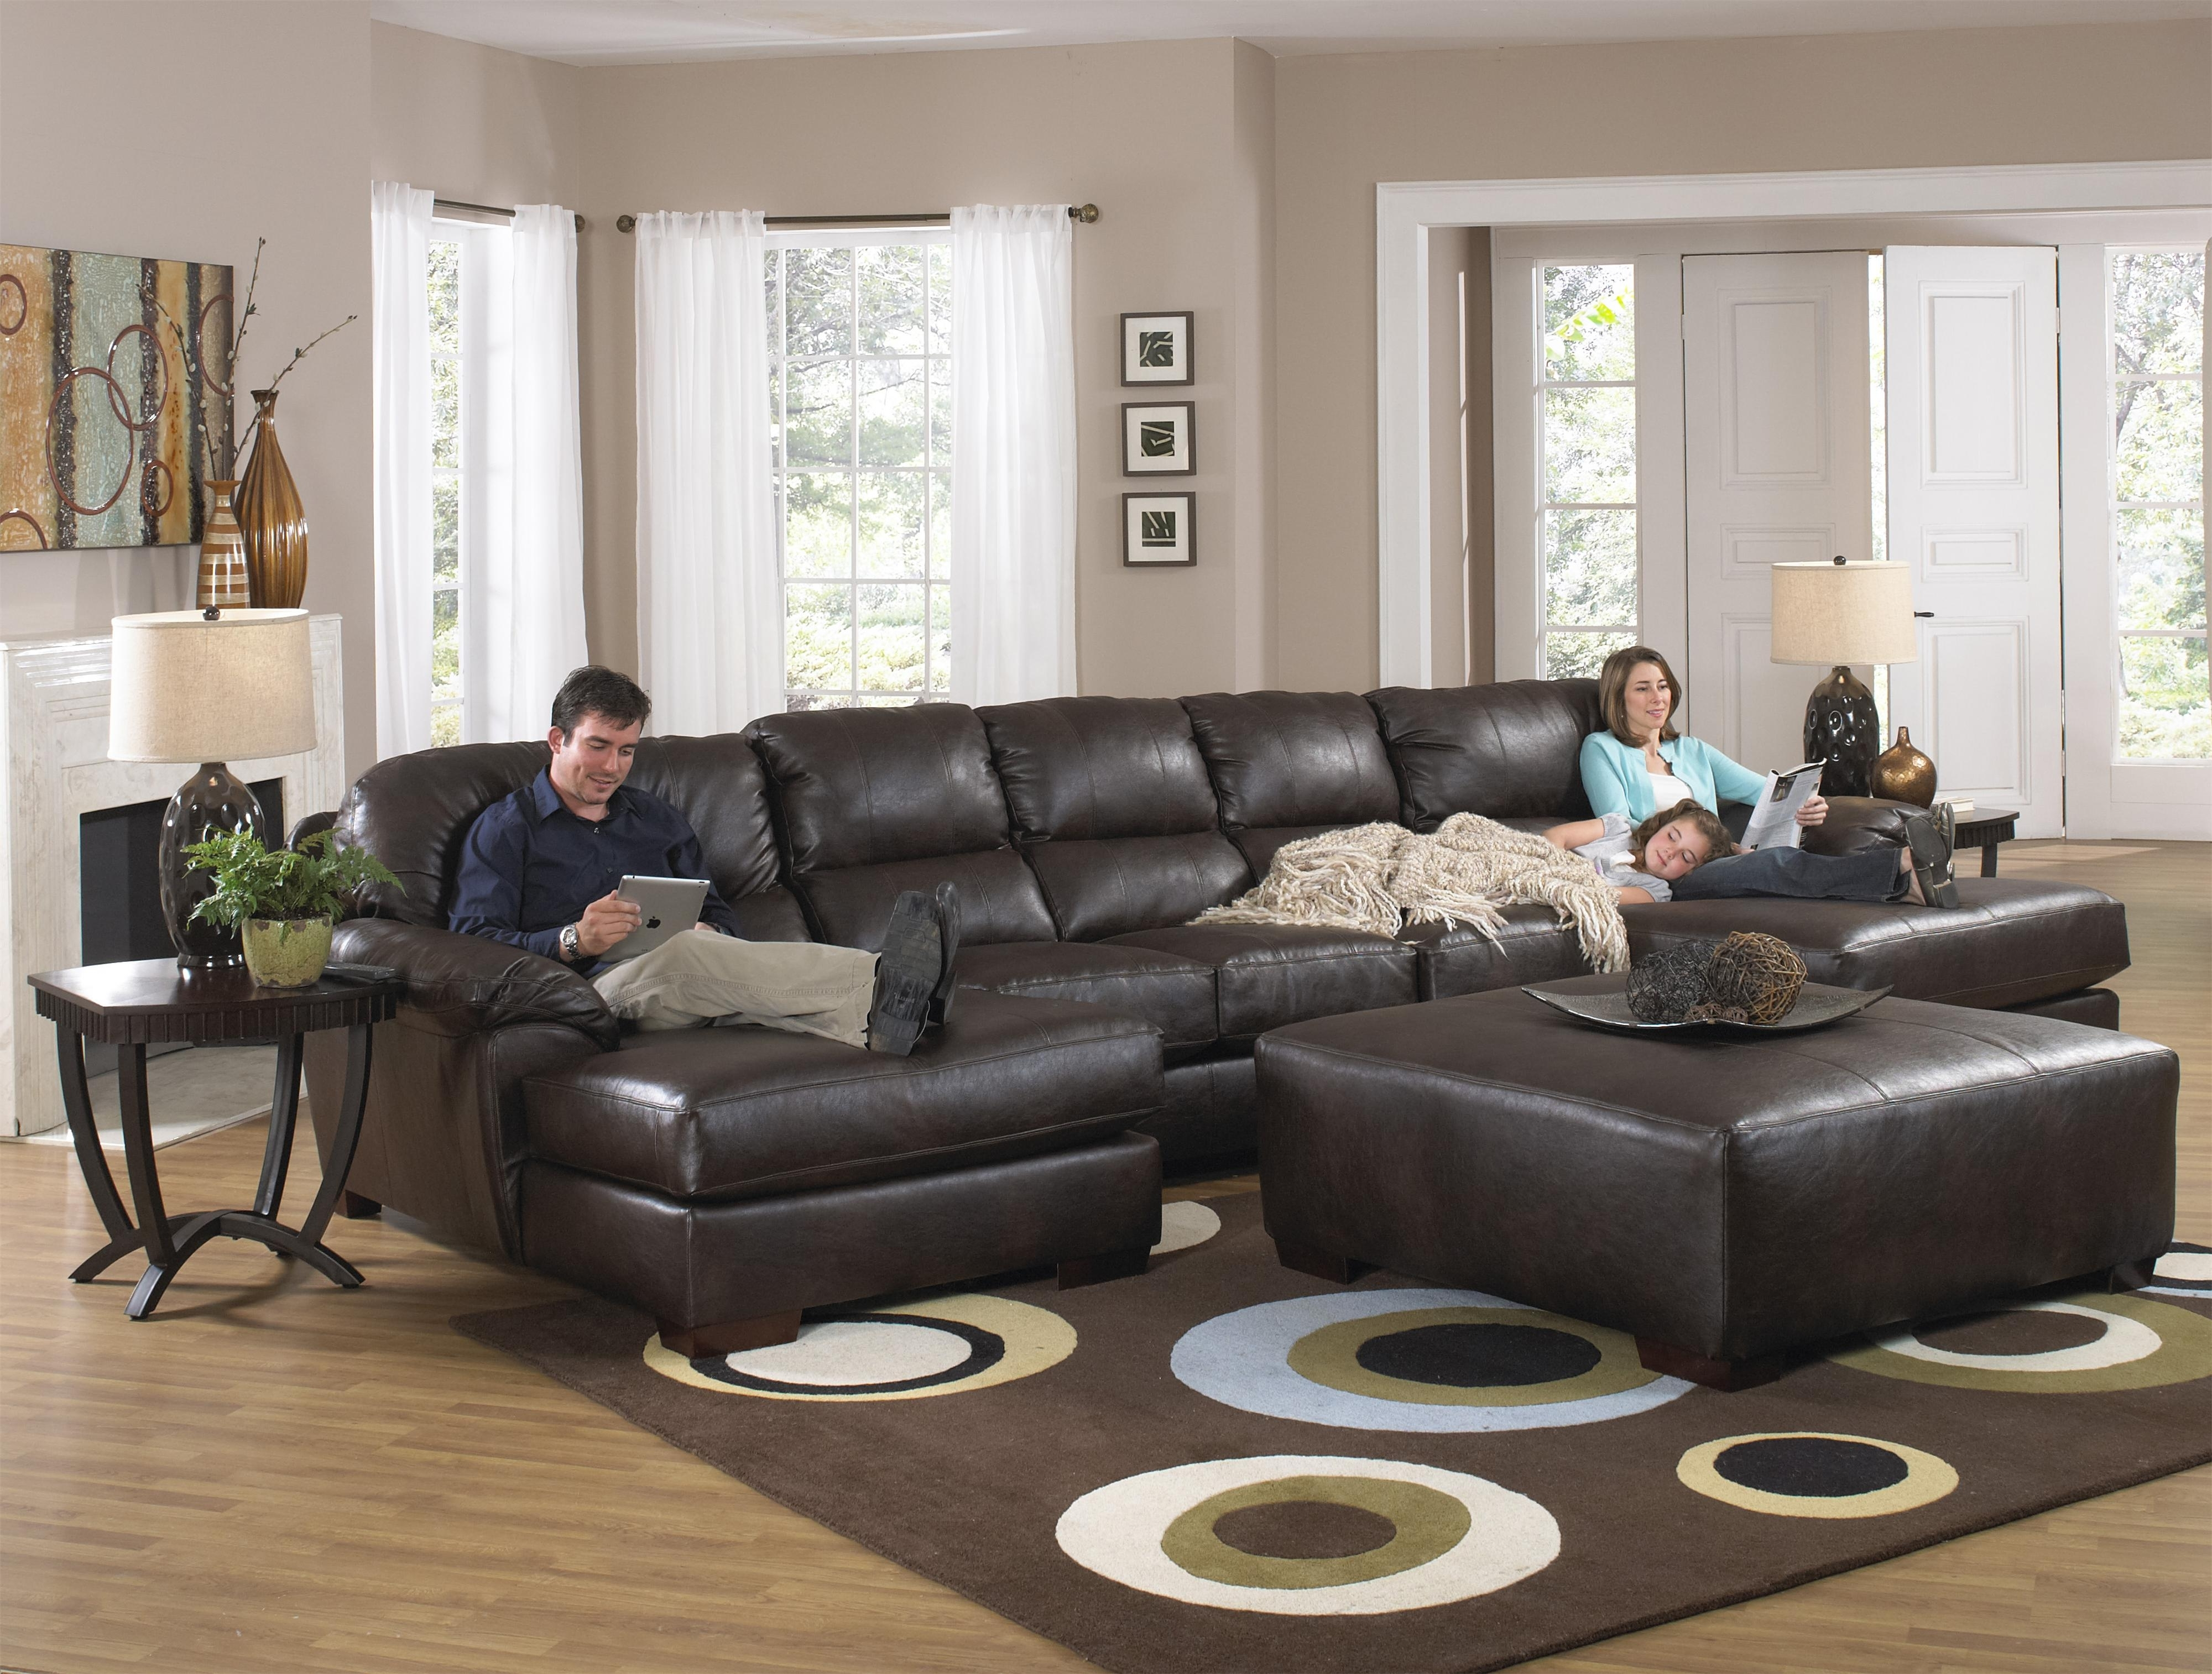 Sofa Loveseat And Chaise Sets In Well Liked Two Chaise Sectional Sofa With Five Total Seatsjackson (View 8 of 15)